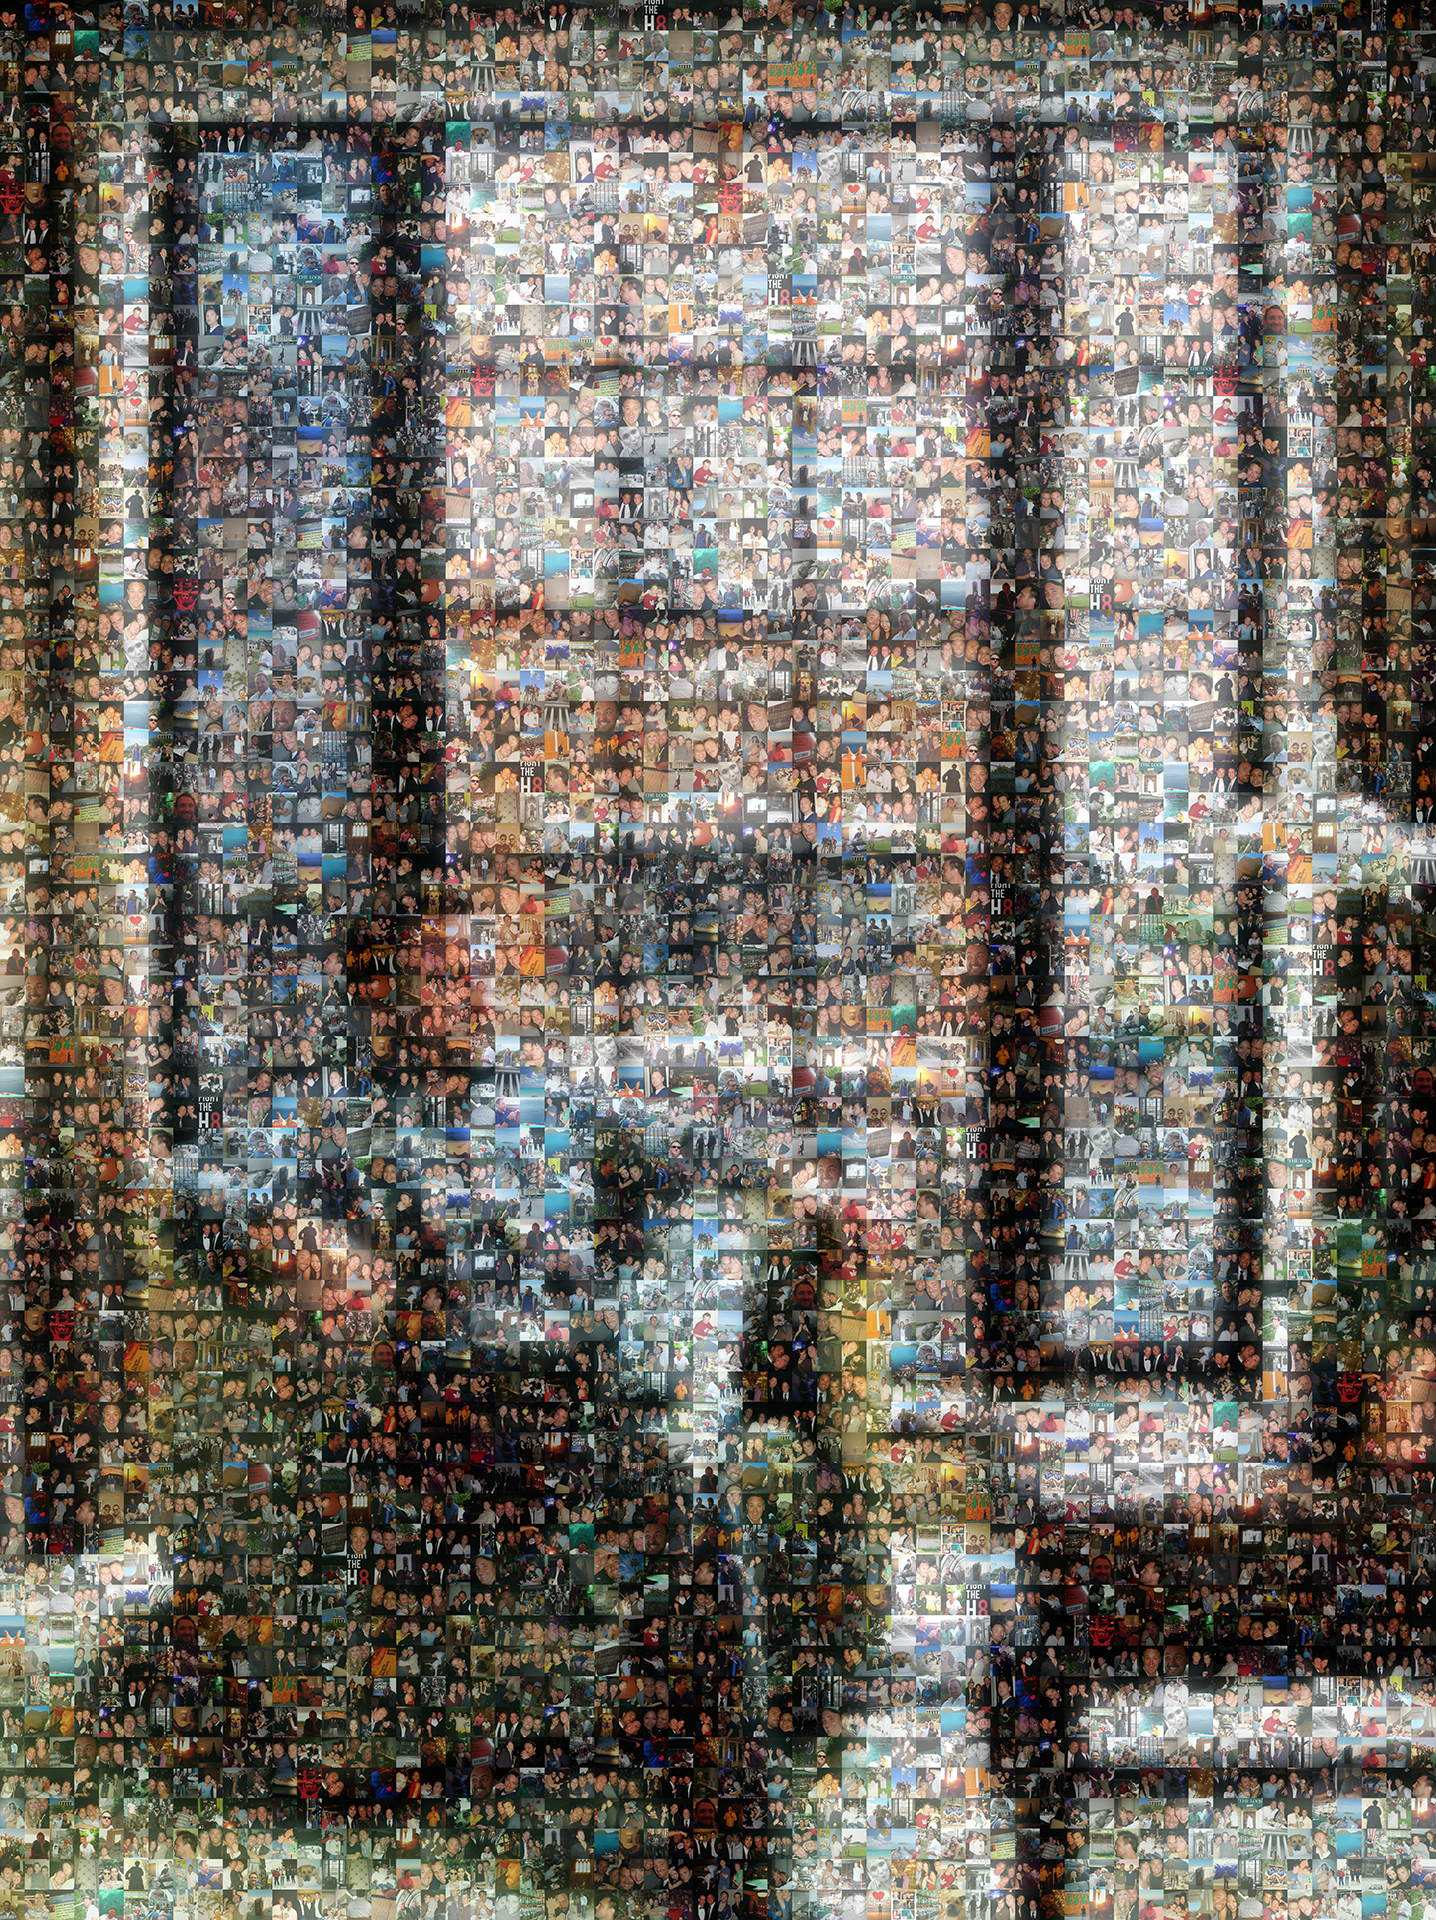 photo mosaic created using 387 customer selected photos